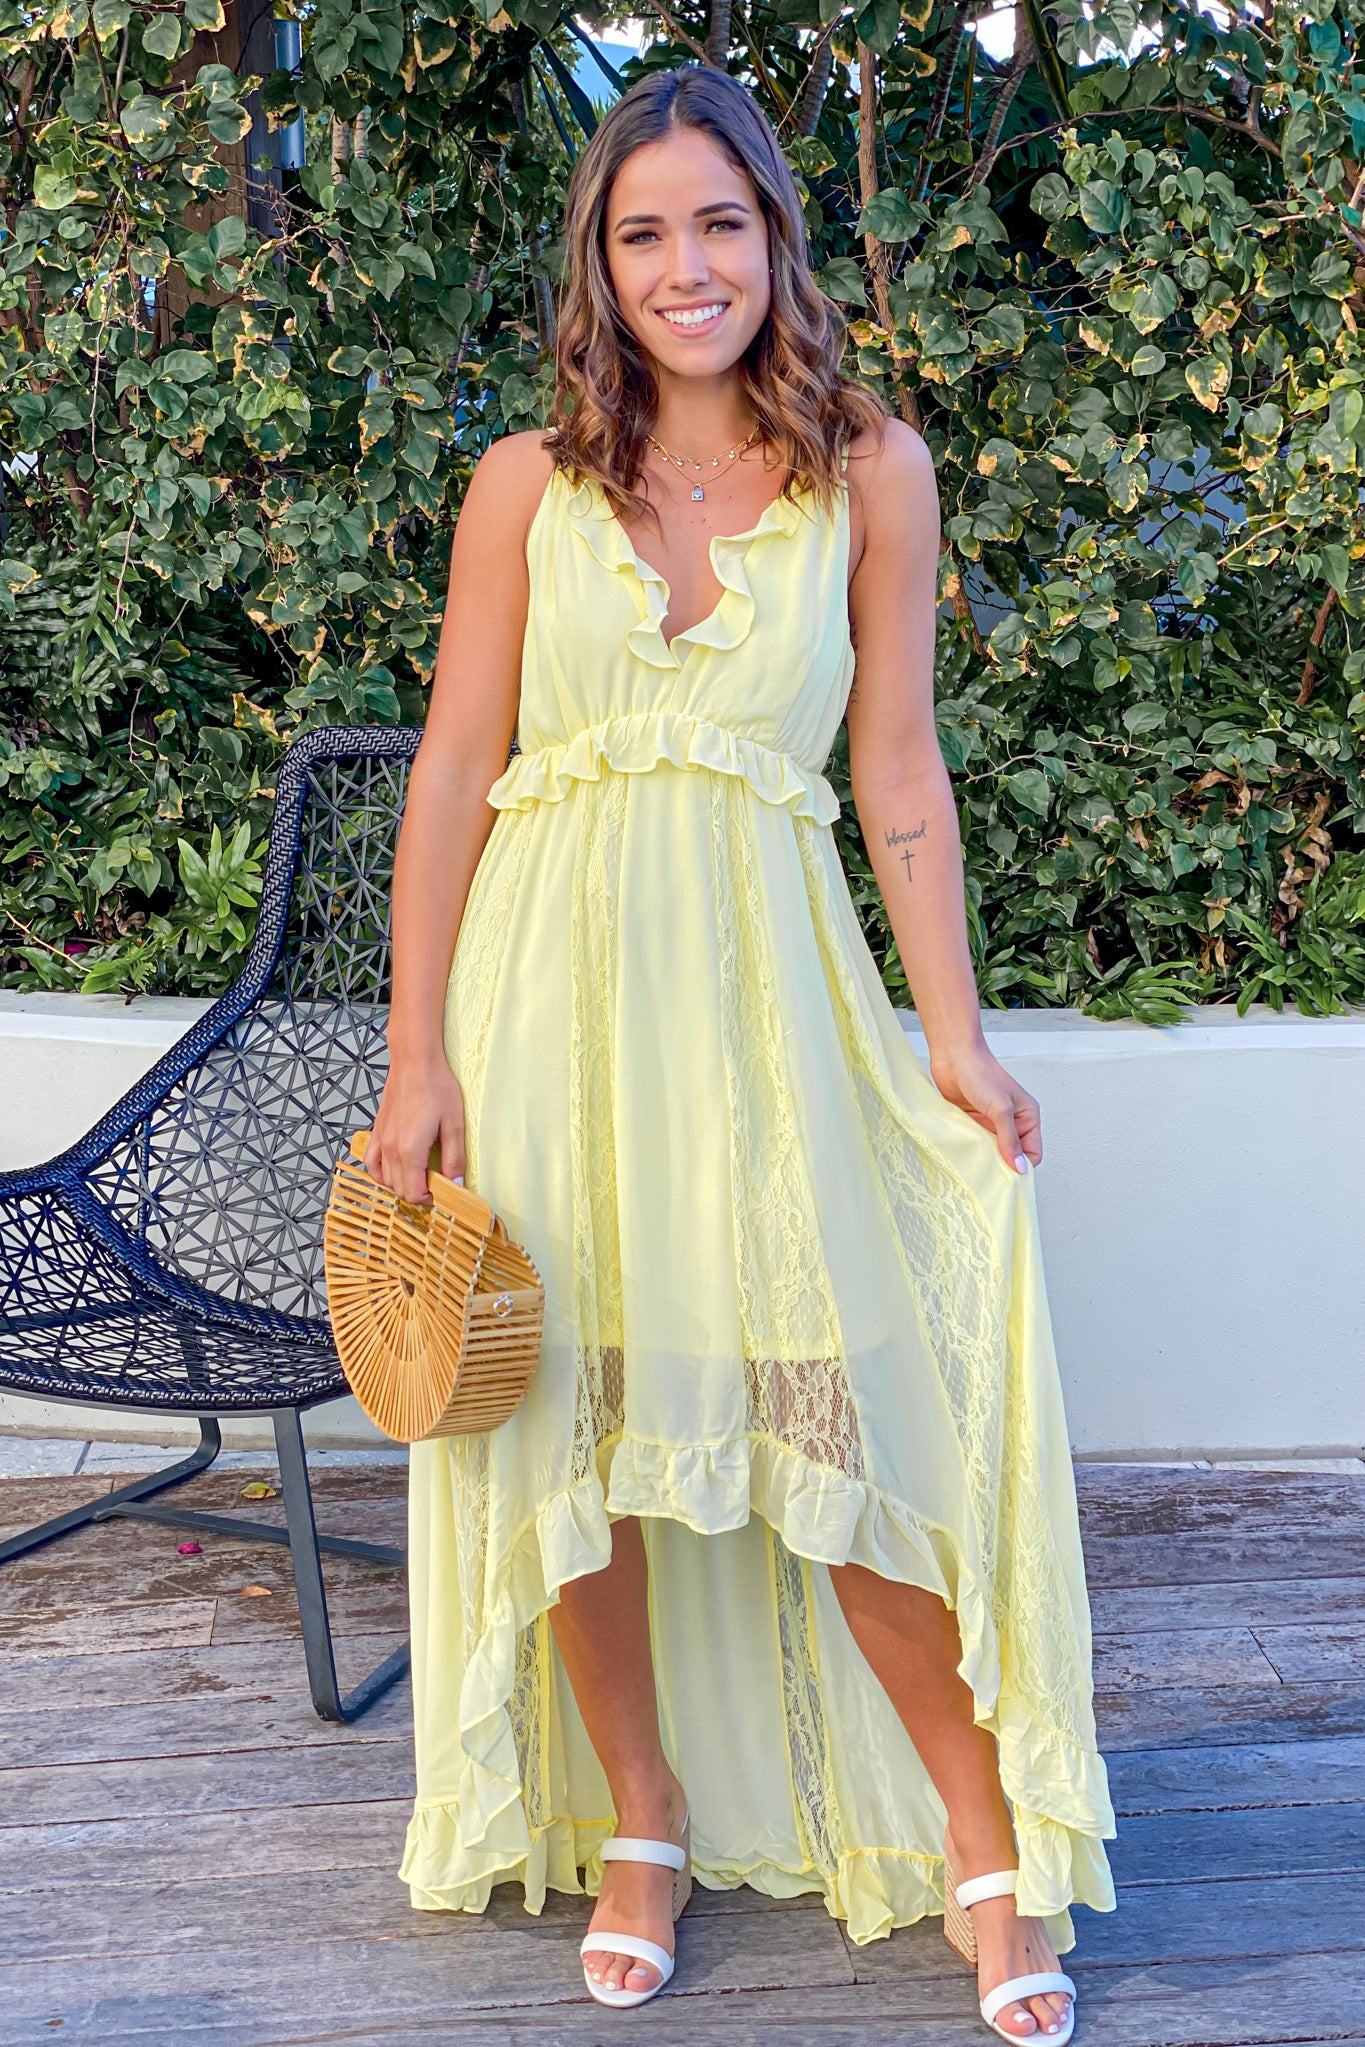 Ruffled Dress with square-toed heels